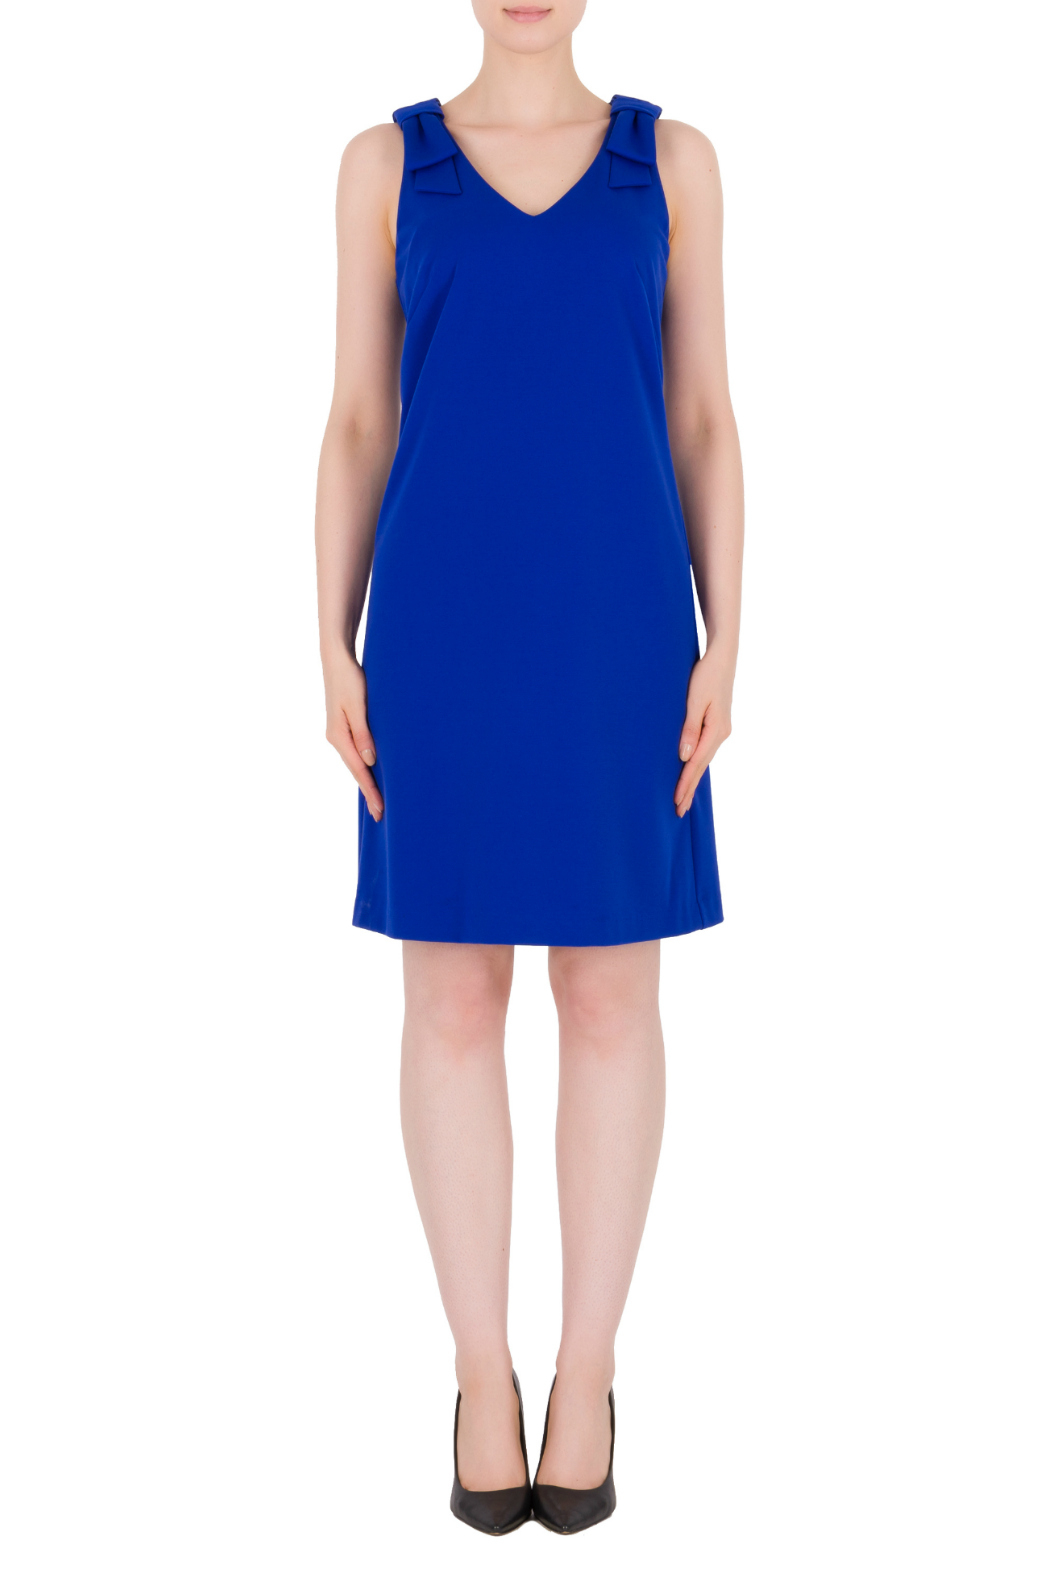 Joseph Ribkoff USA Inc. Bow Detail Straps Dress - Main Image